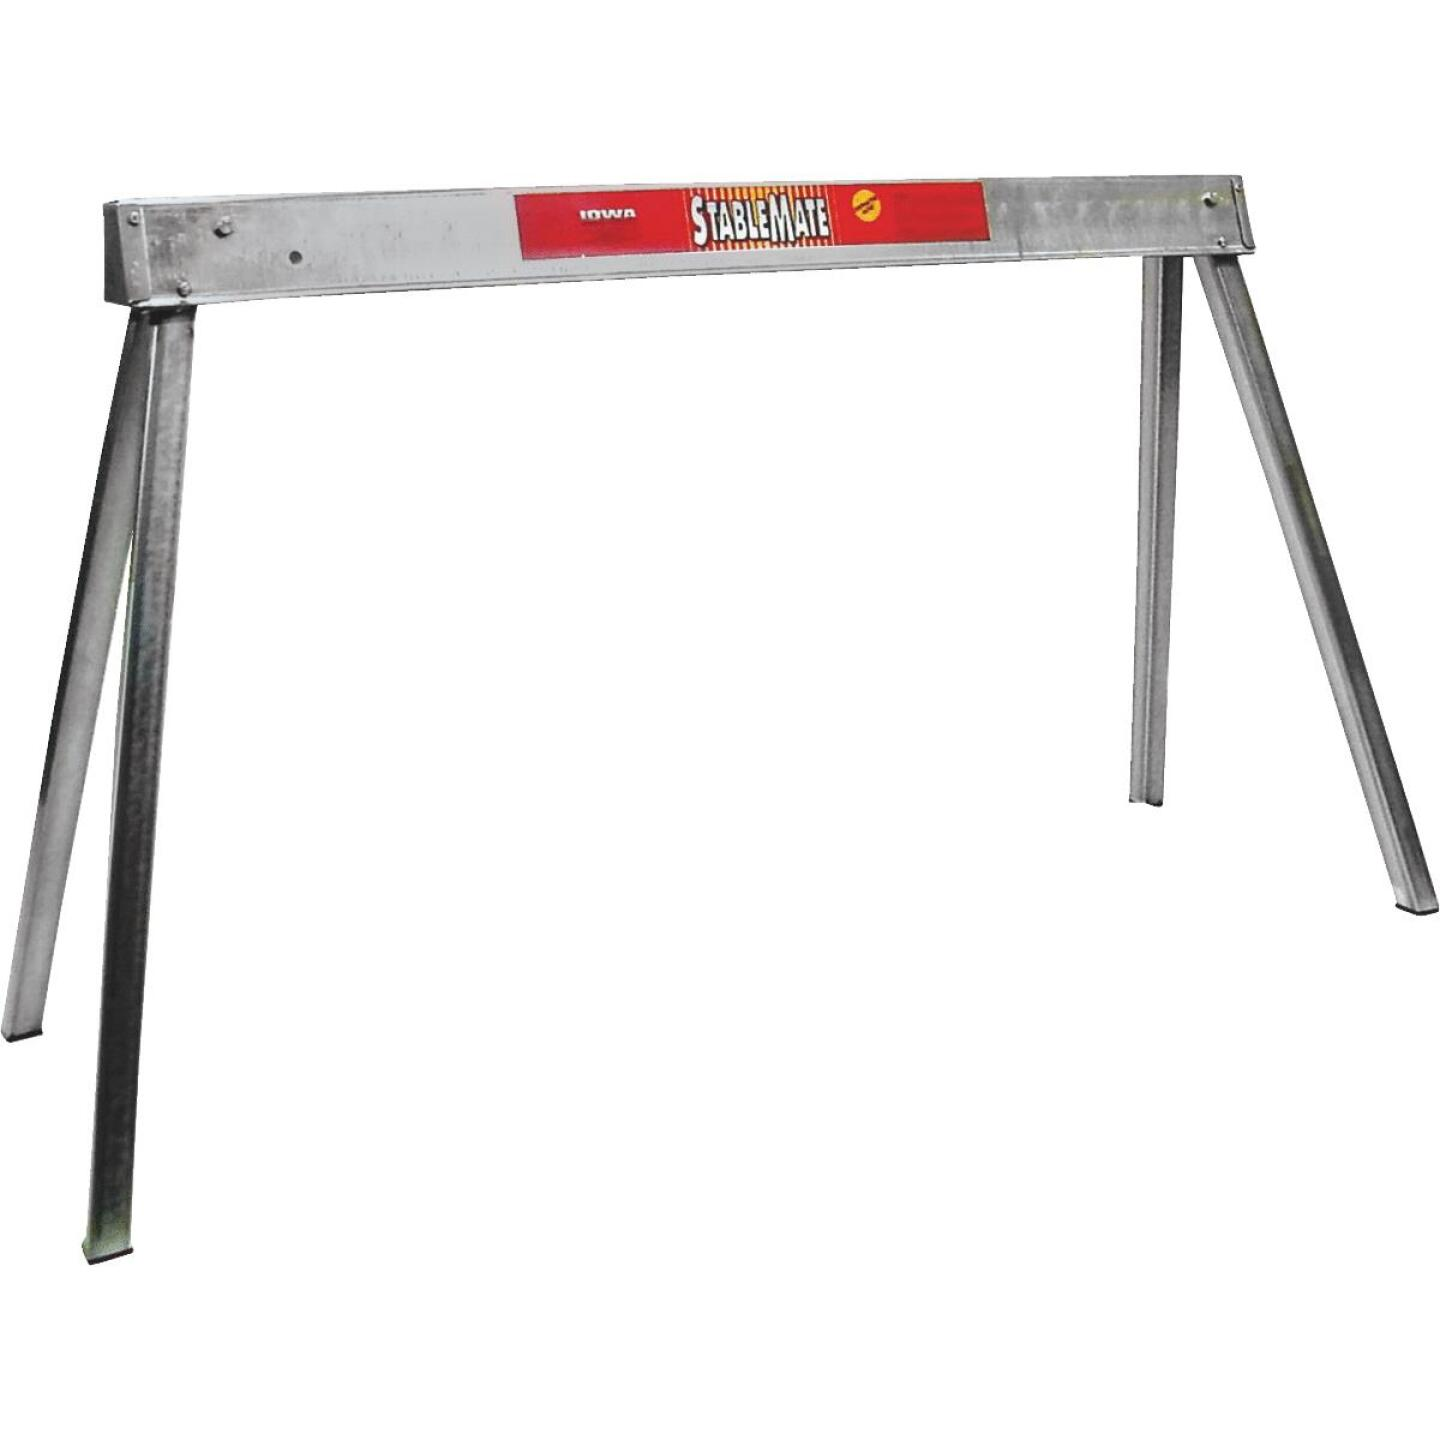 Stablemate 42 In. L Steel Folding Sawhorse, 1000 Lb. Capacity Image 1